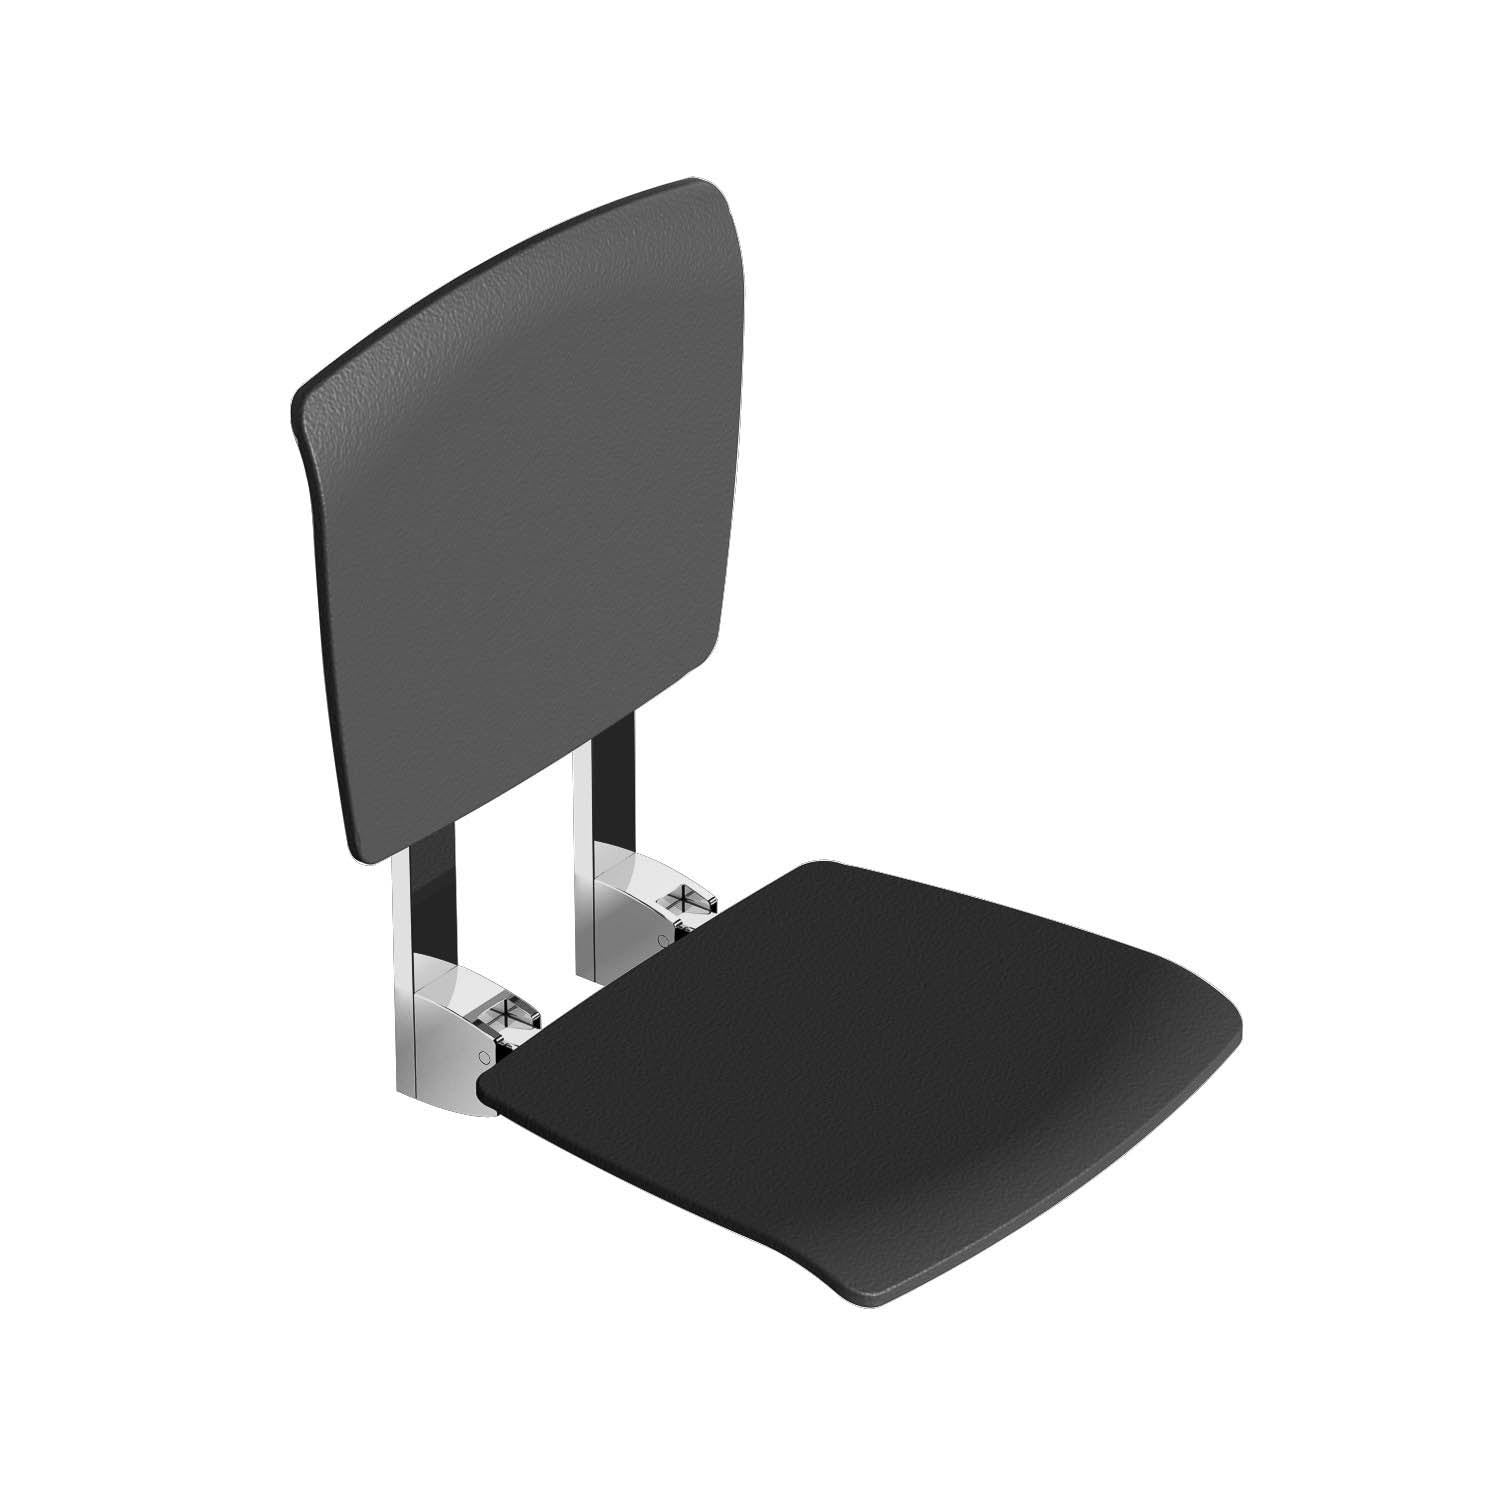 Esense Fixed Shower Seat and backrest with a black finish on a white background